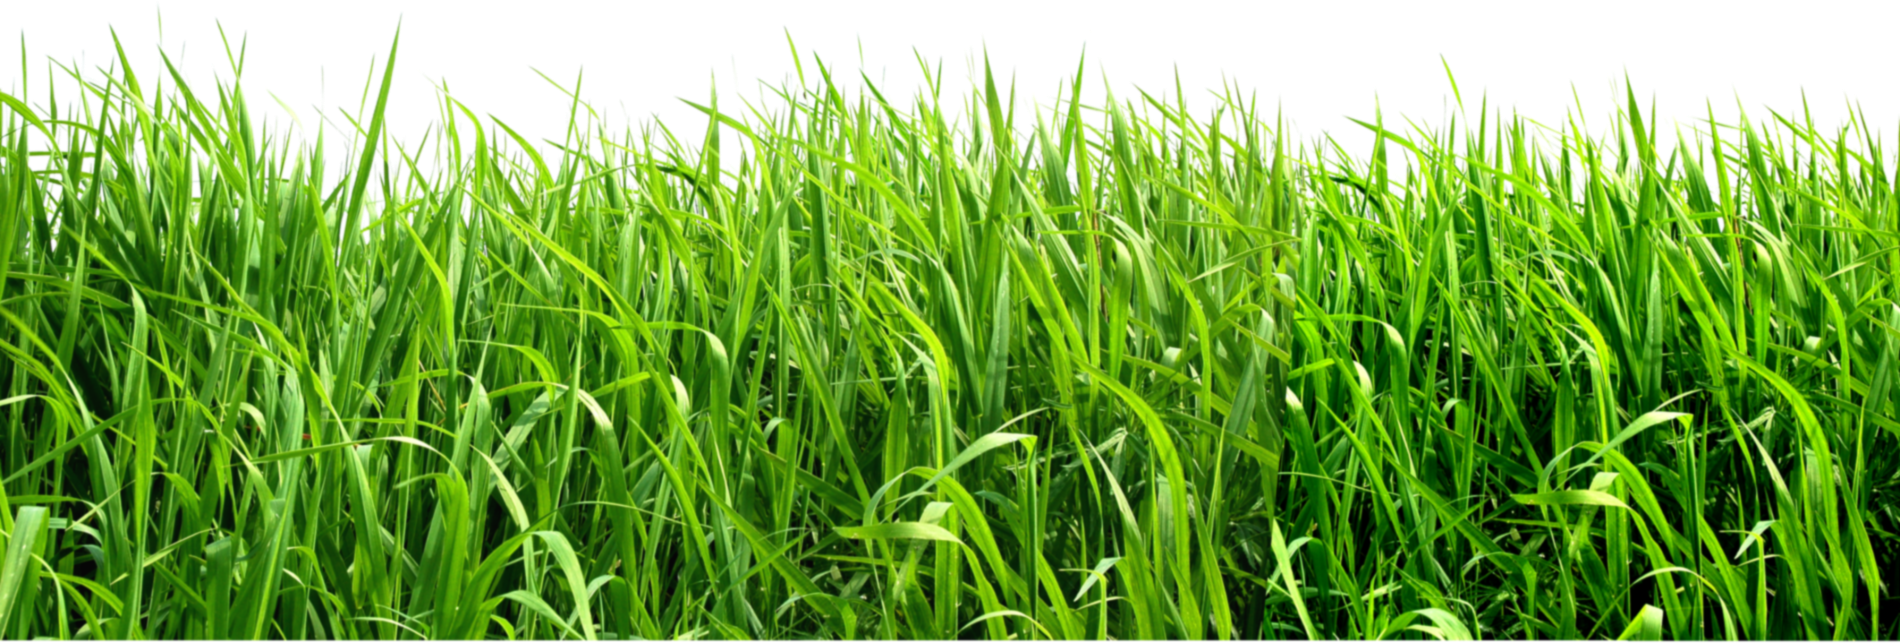 Grass background png. Image purepng free transparent